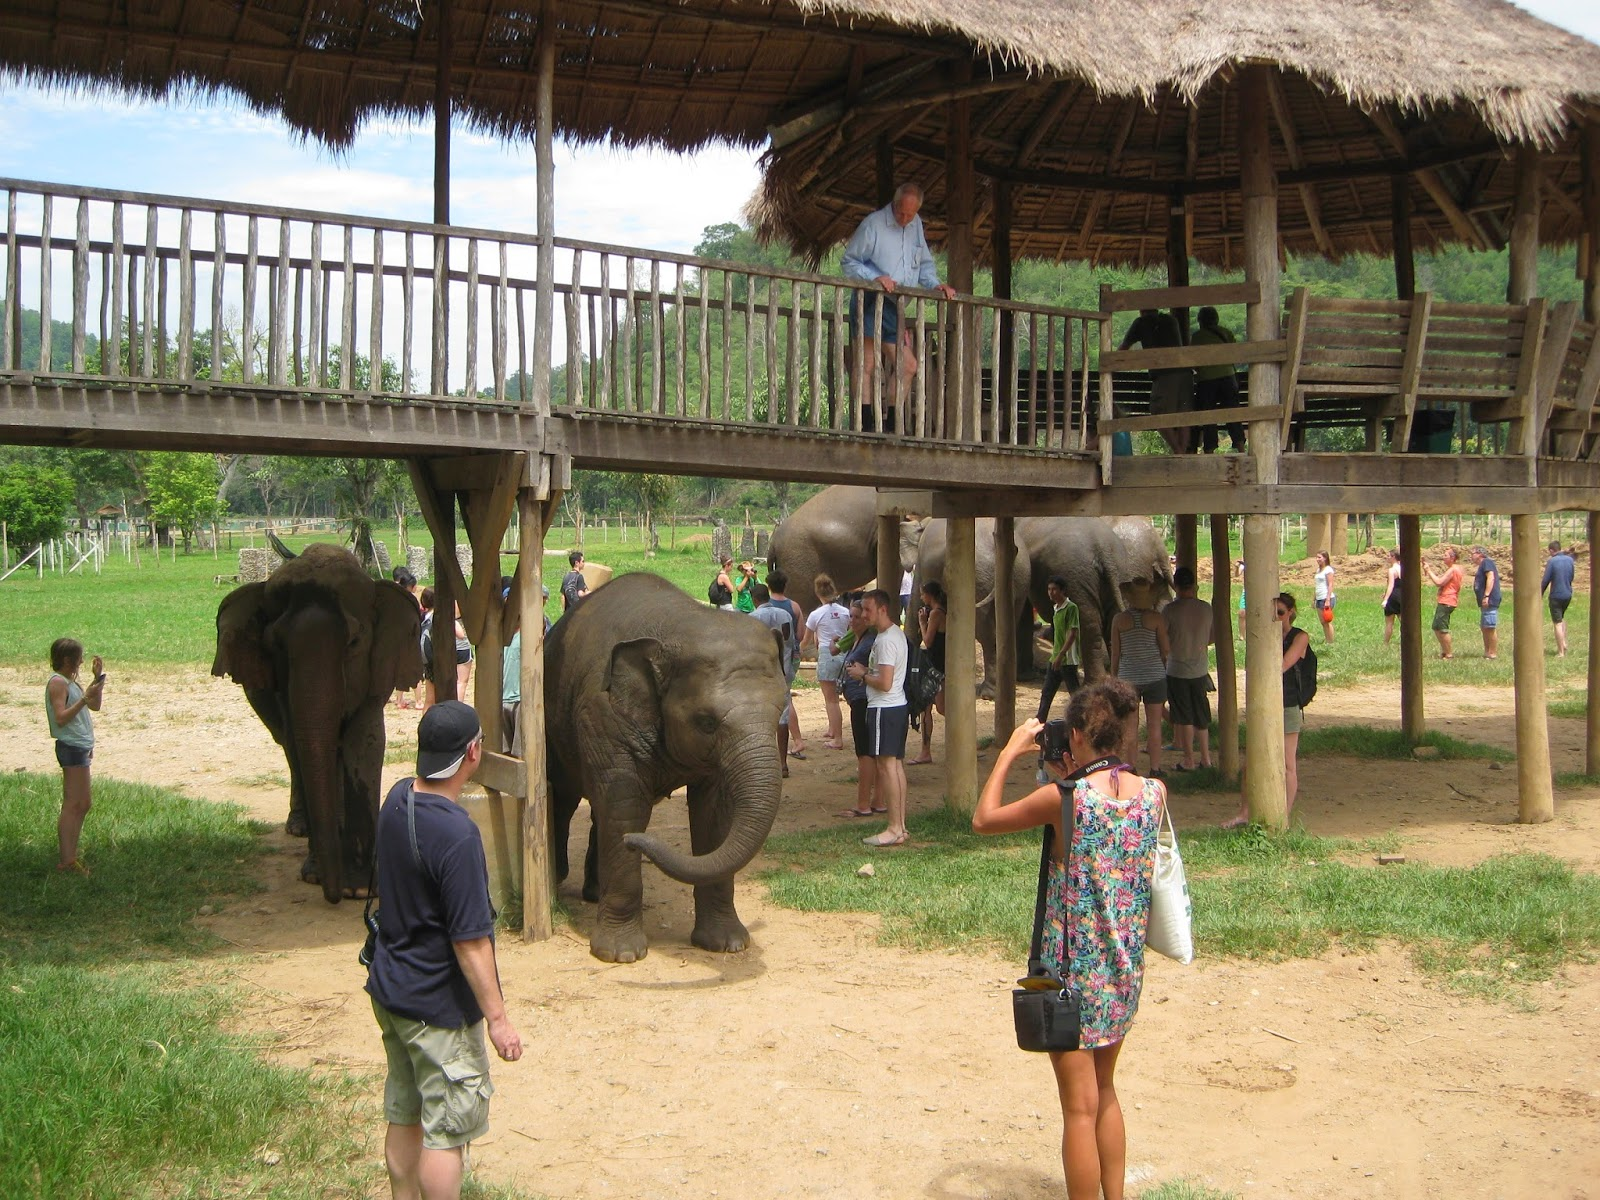 Chiang Mai - We were free to mix with the elephants after they ate